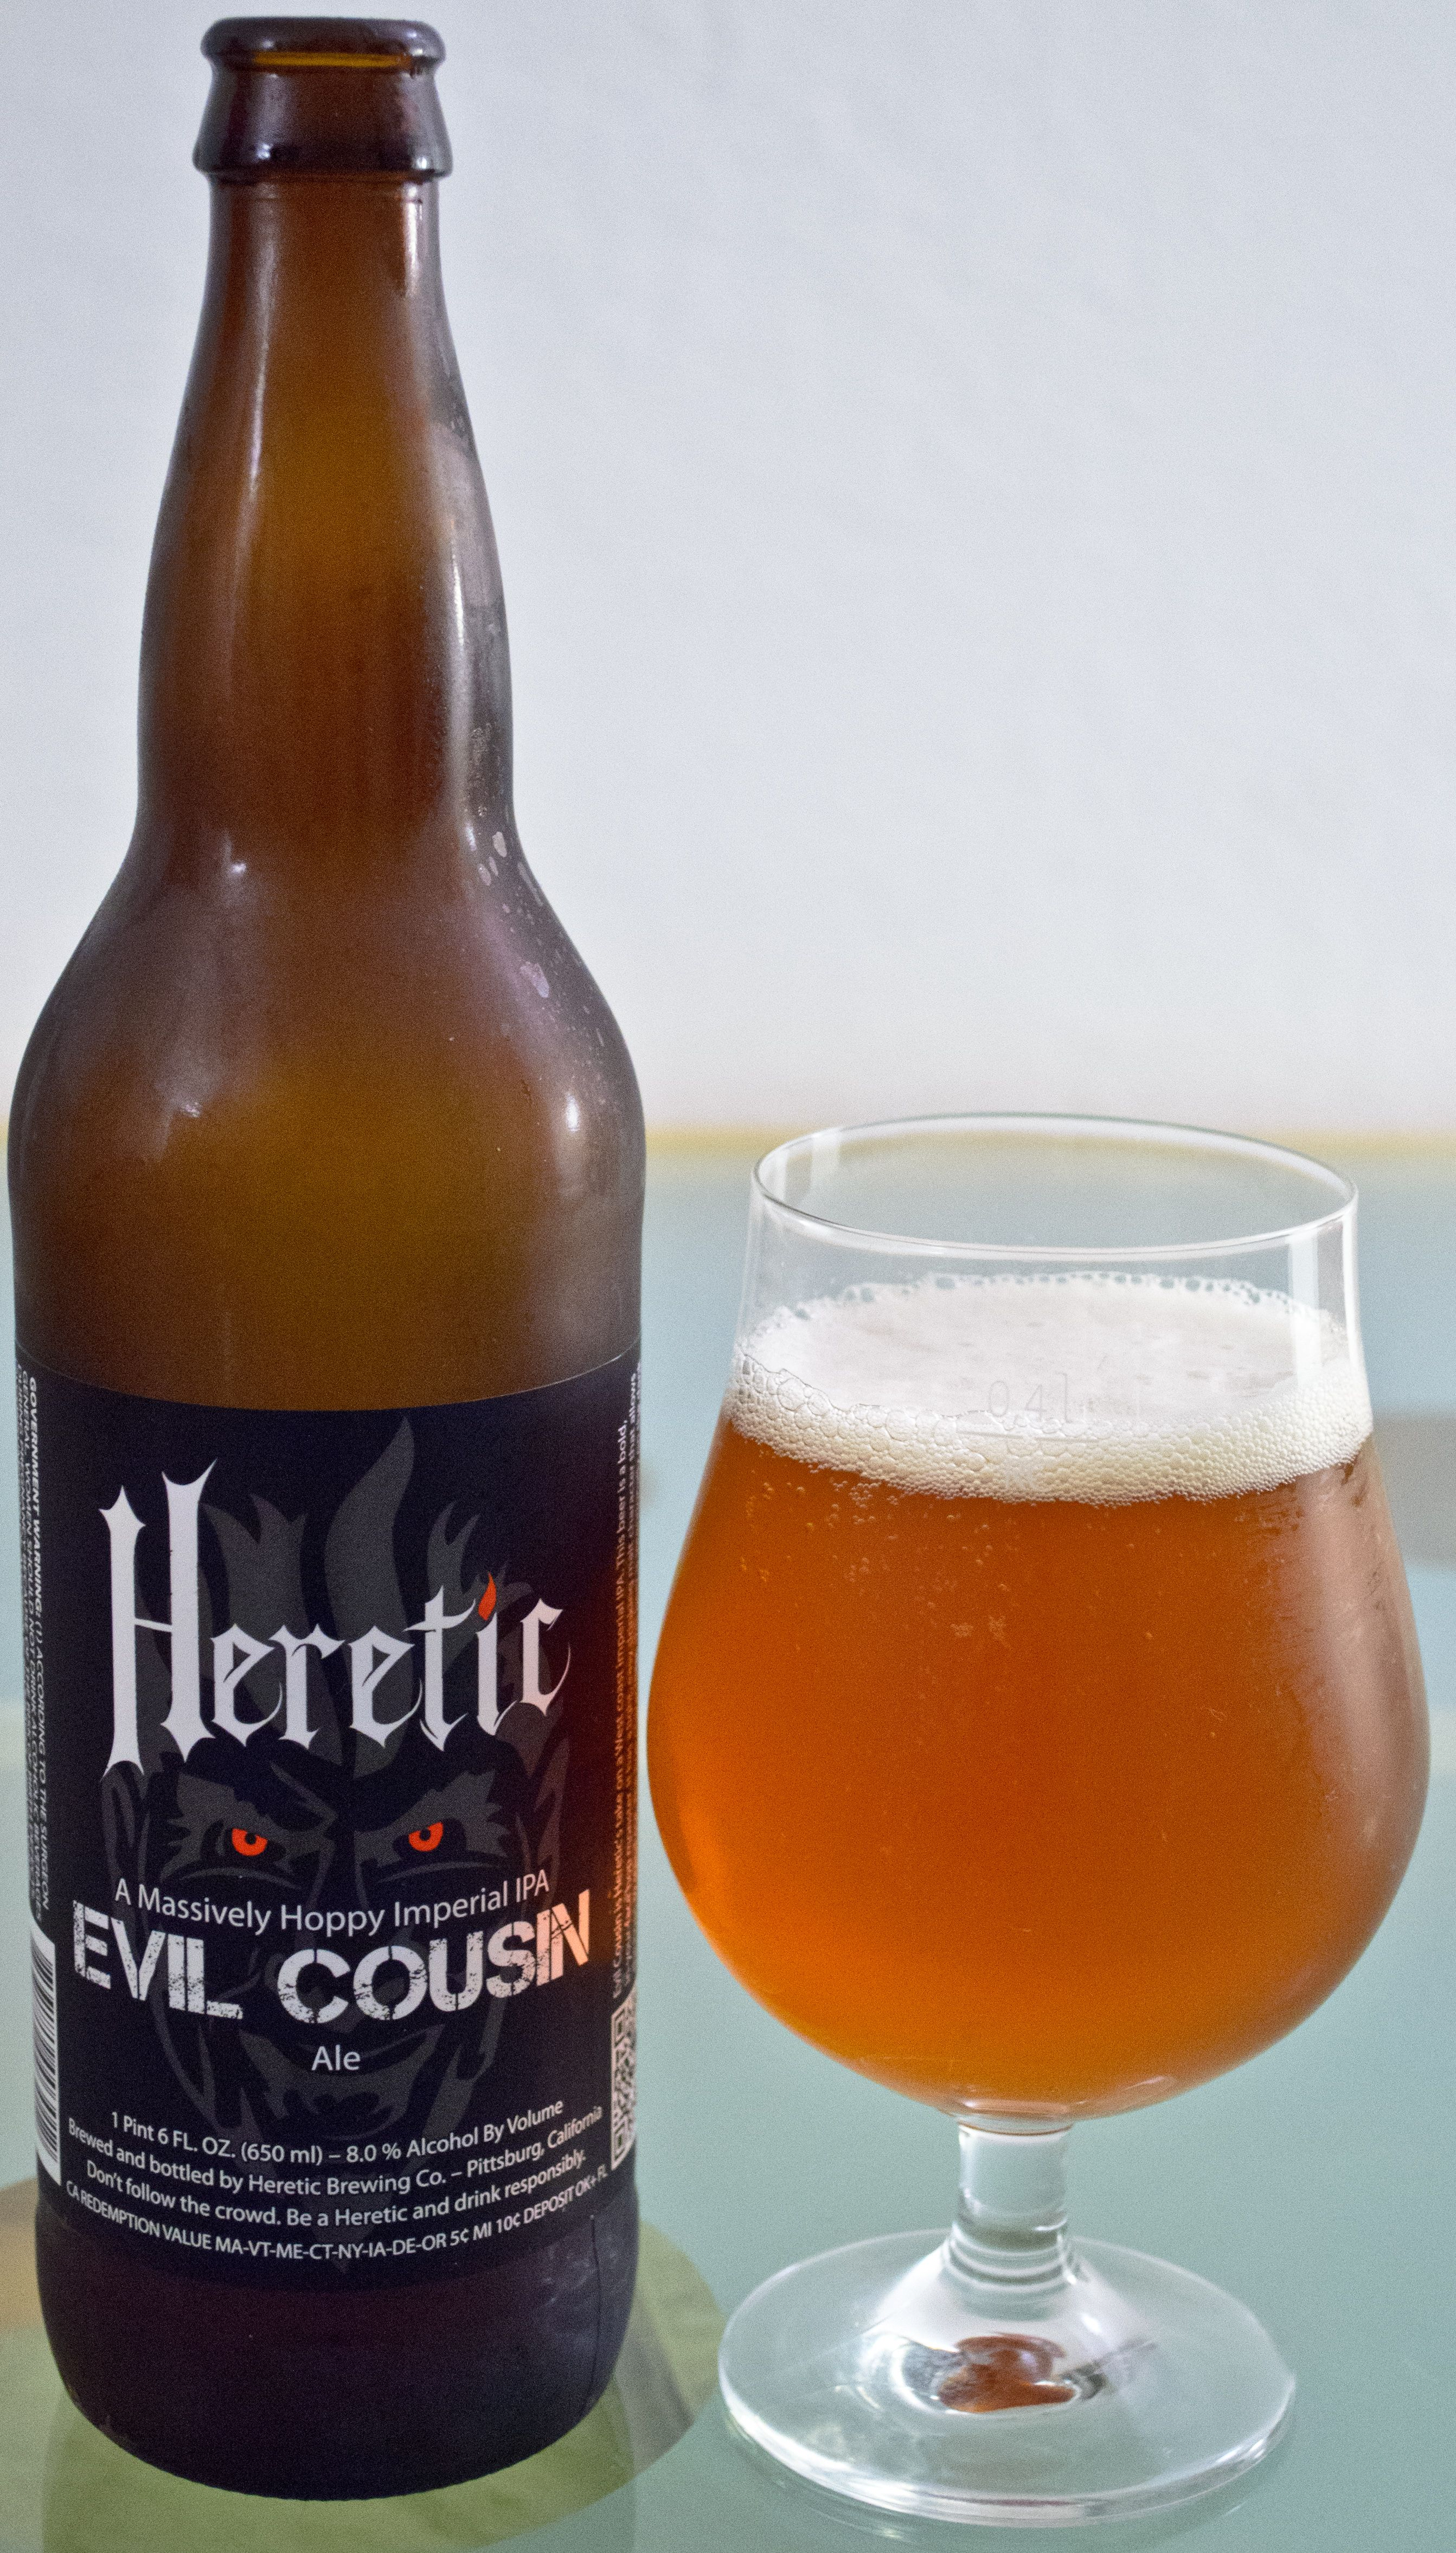 Heretic's Evil Cousin - This one was a very nice example of a really hop forward DIPA. The hops really took front and center here. The good thing is that the hops had a great complex profile that was really nice from start to end with some good bitterness throughout. The beer did not feel quite balanced as the hops kinda took over, but I really liked a bold DIPA sometimes.